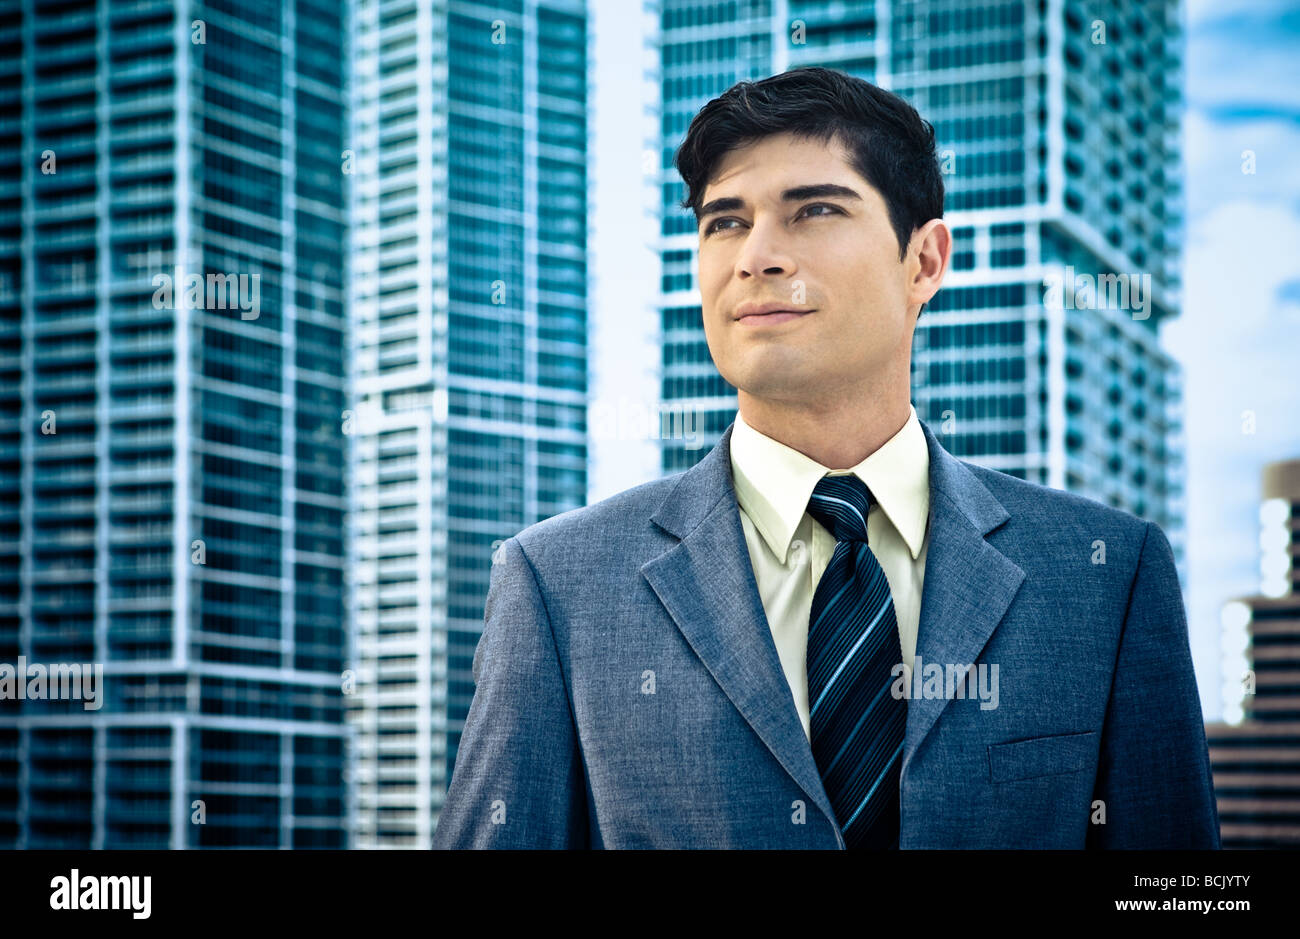 Confident Latin businessman with architectural backdrop - Stock Image